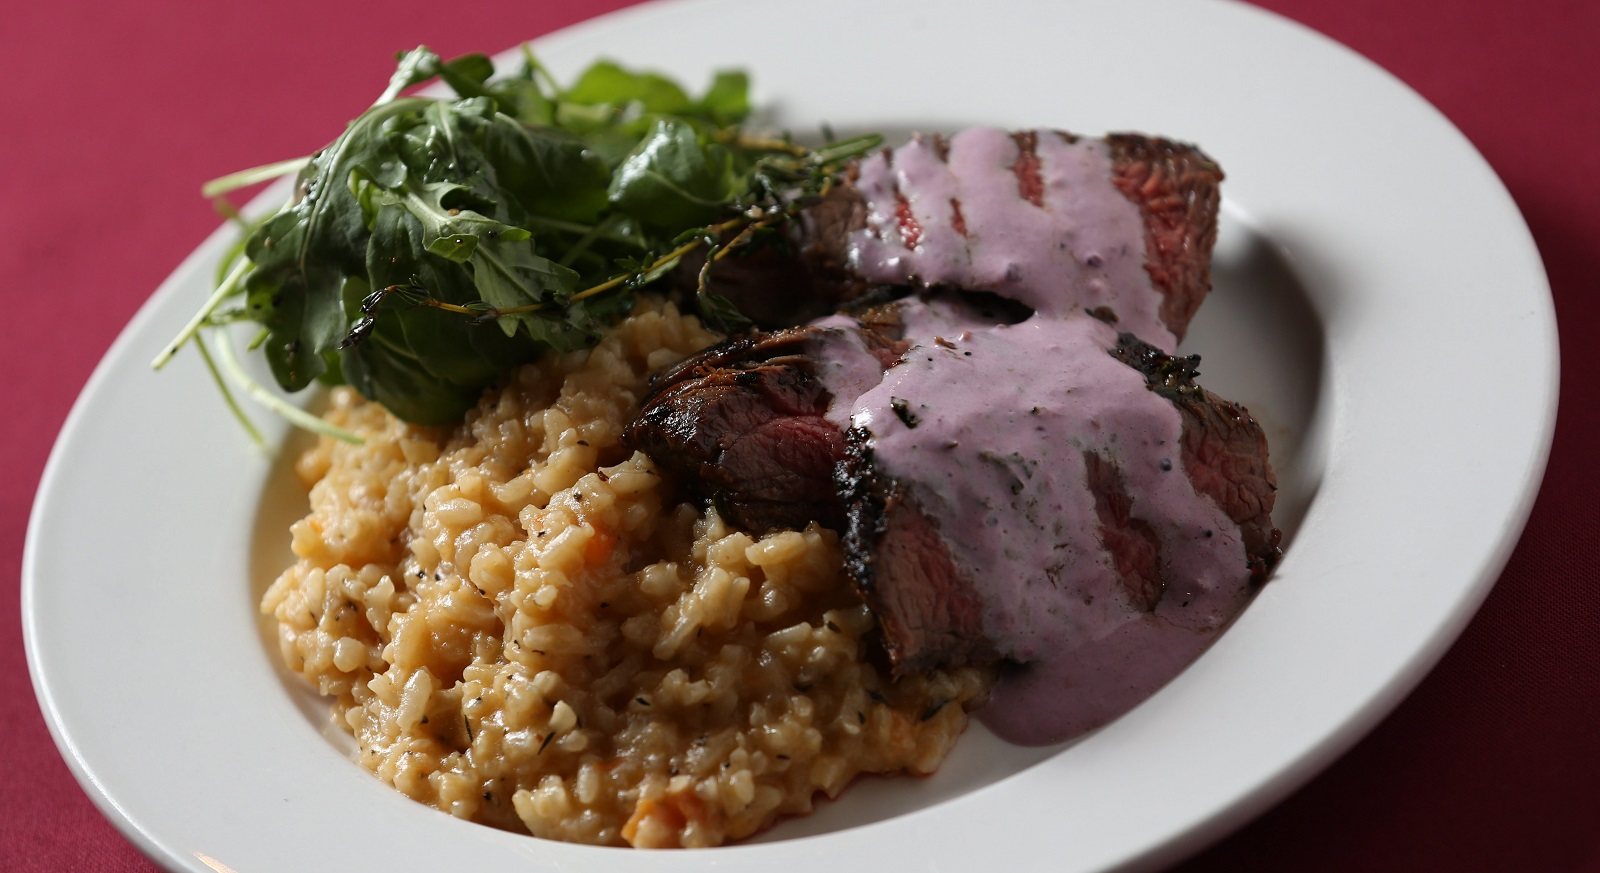 flank steak comes with yam, feta risotto, dressed arugula and a wasabi ...